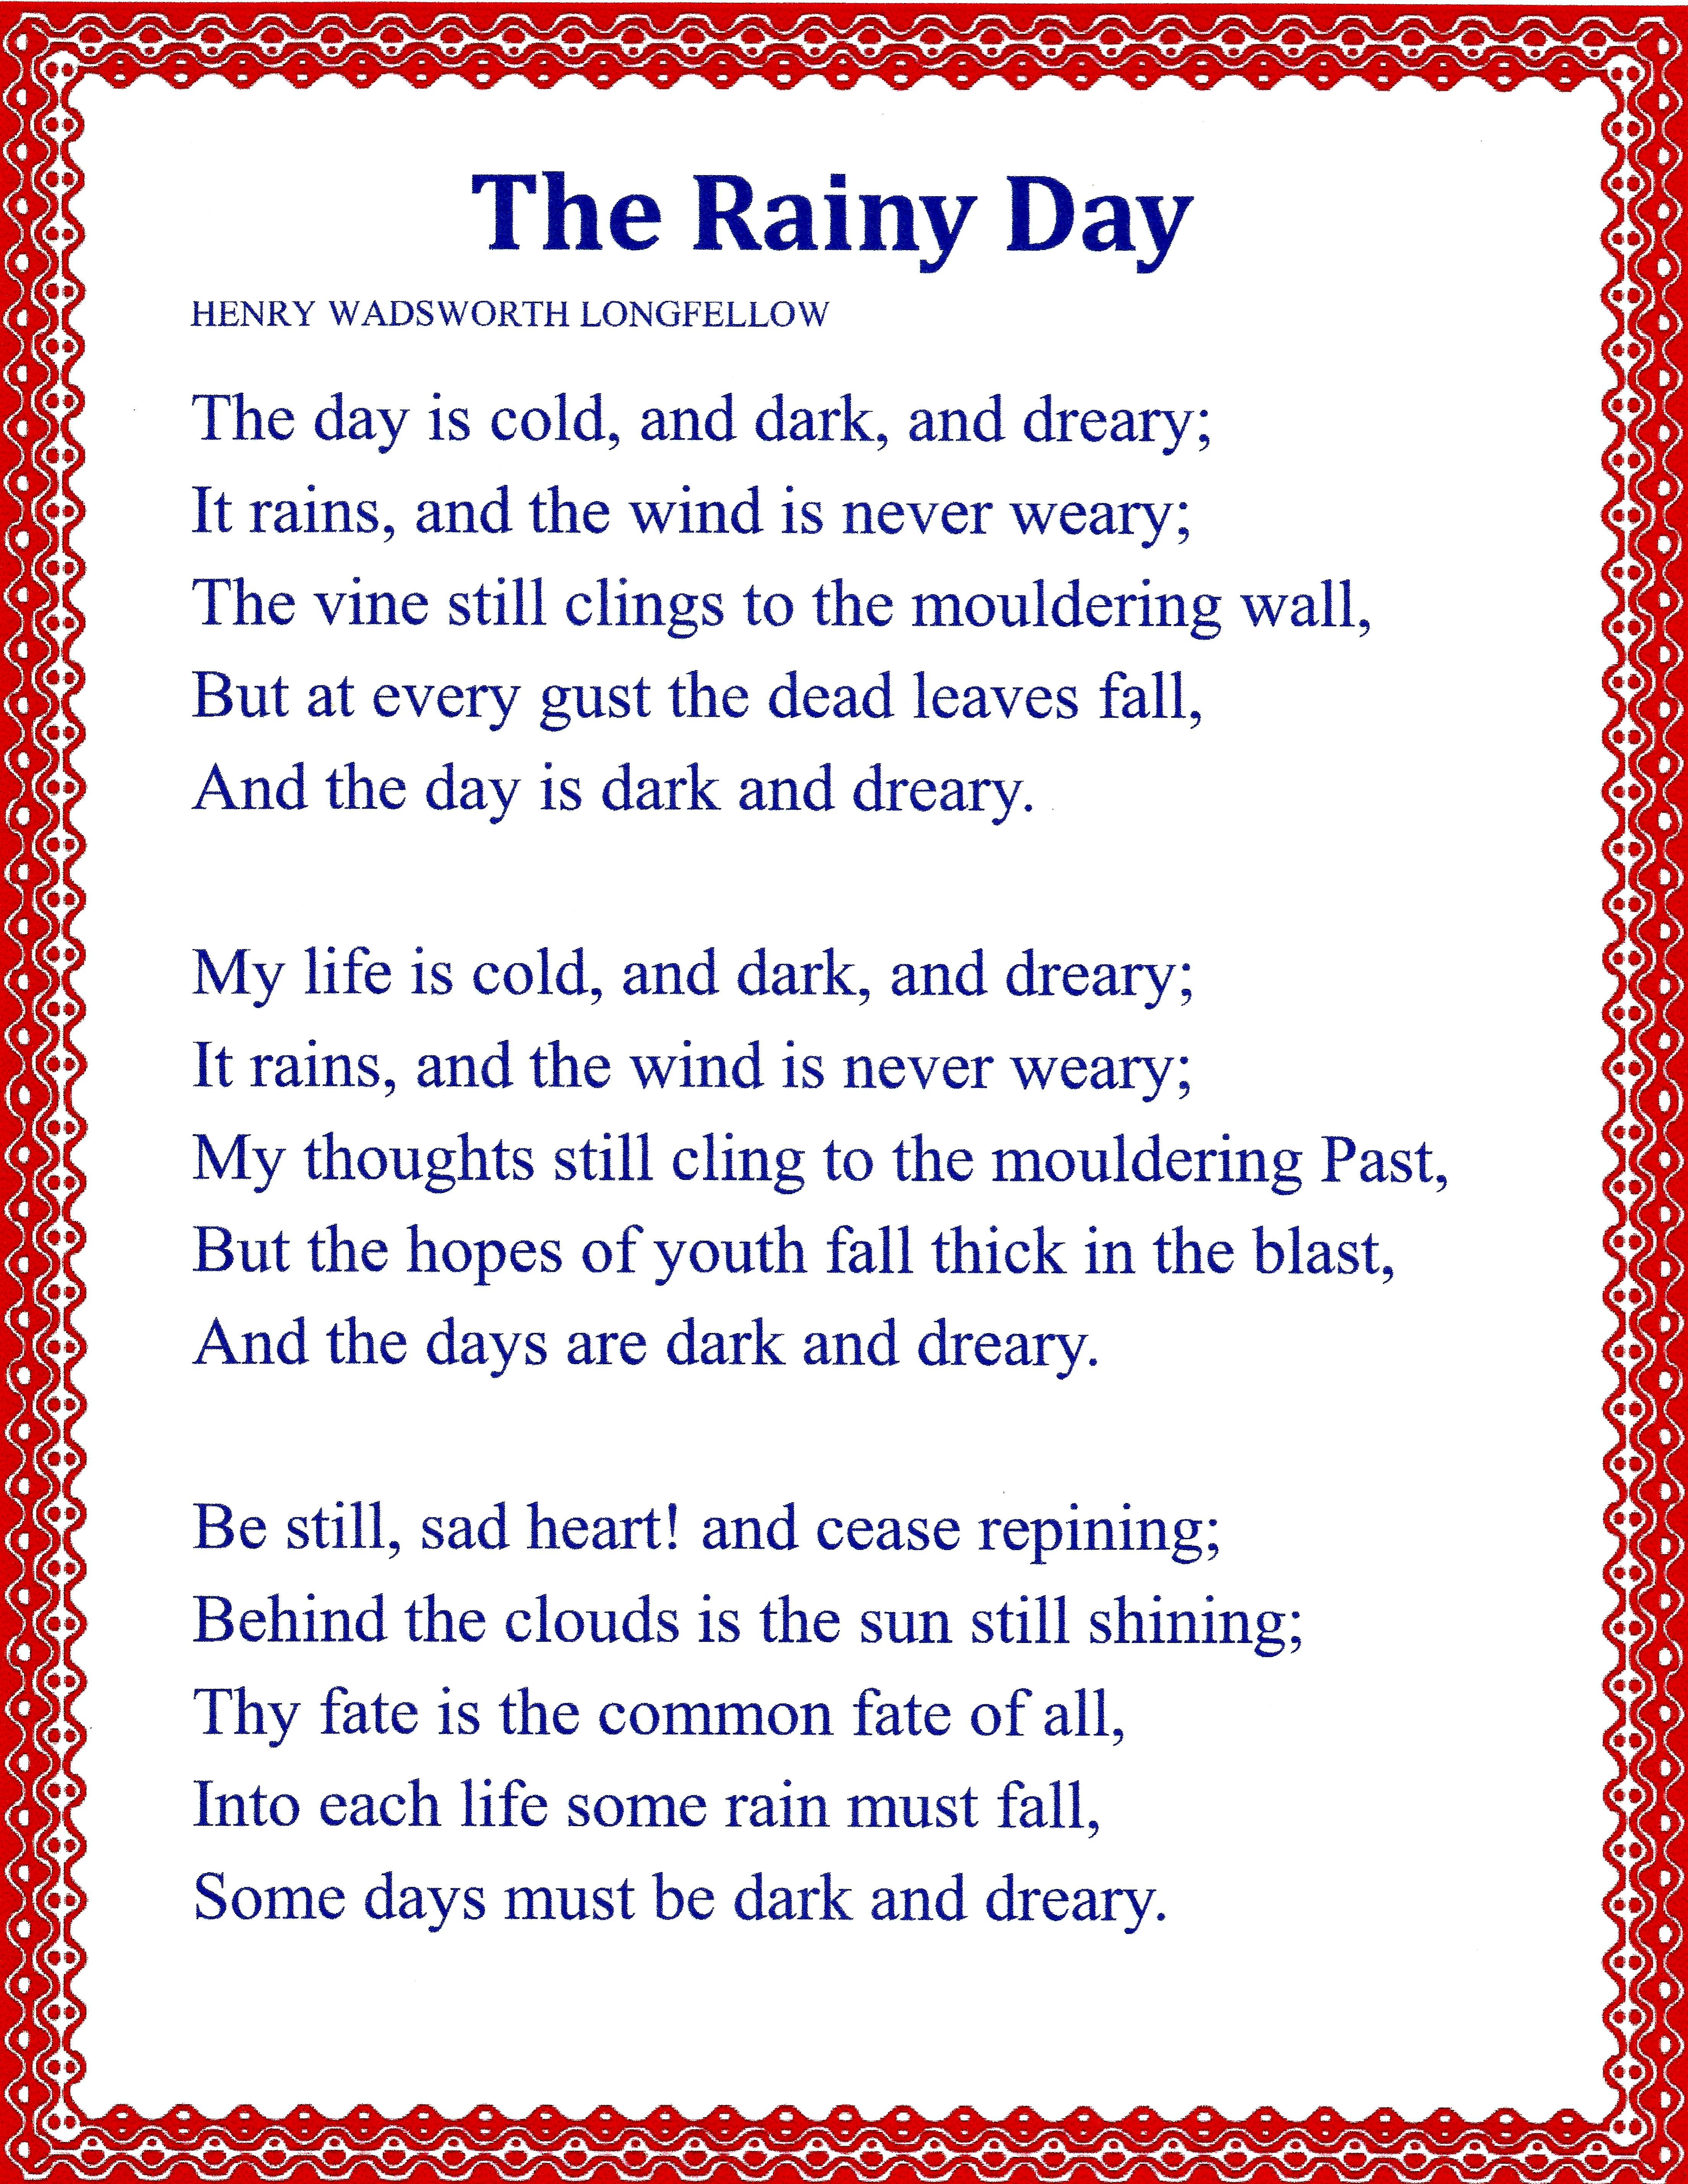 the rainy day poem by henry wadsworth longfellow